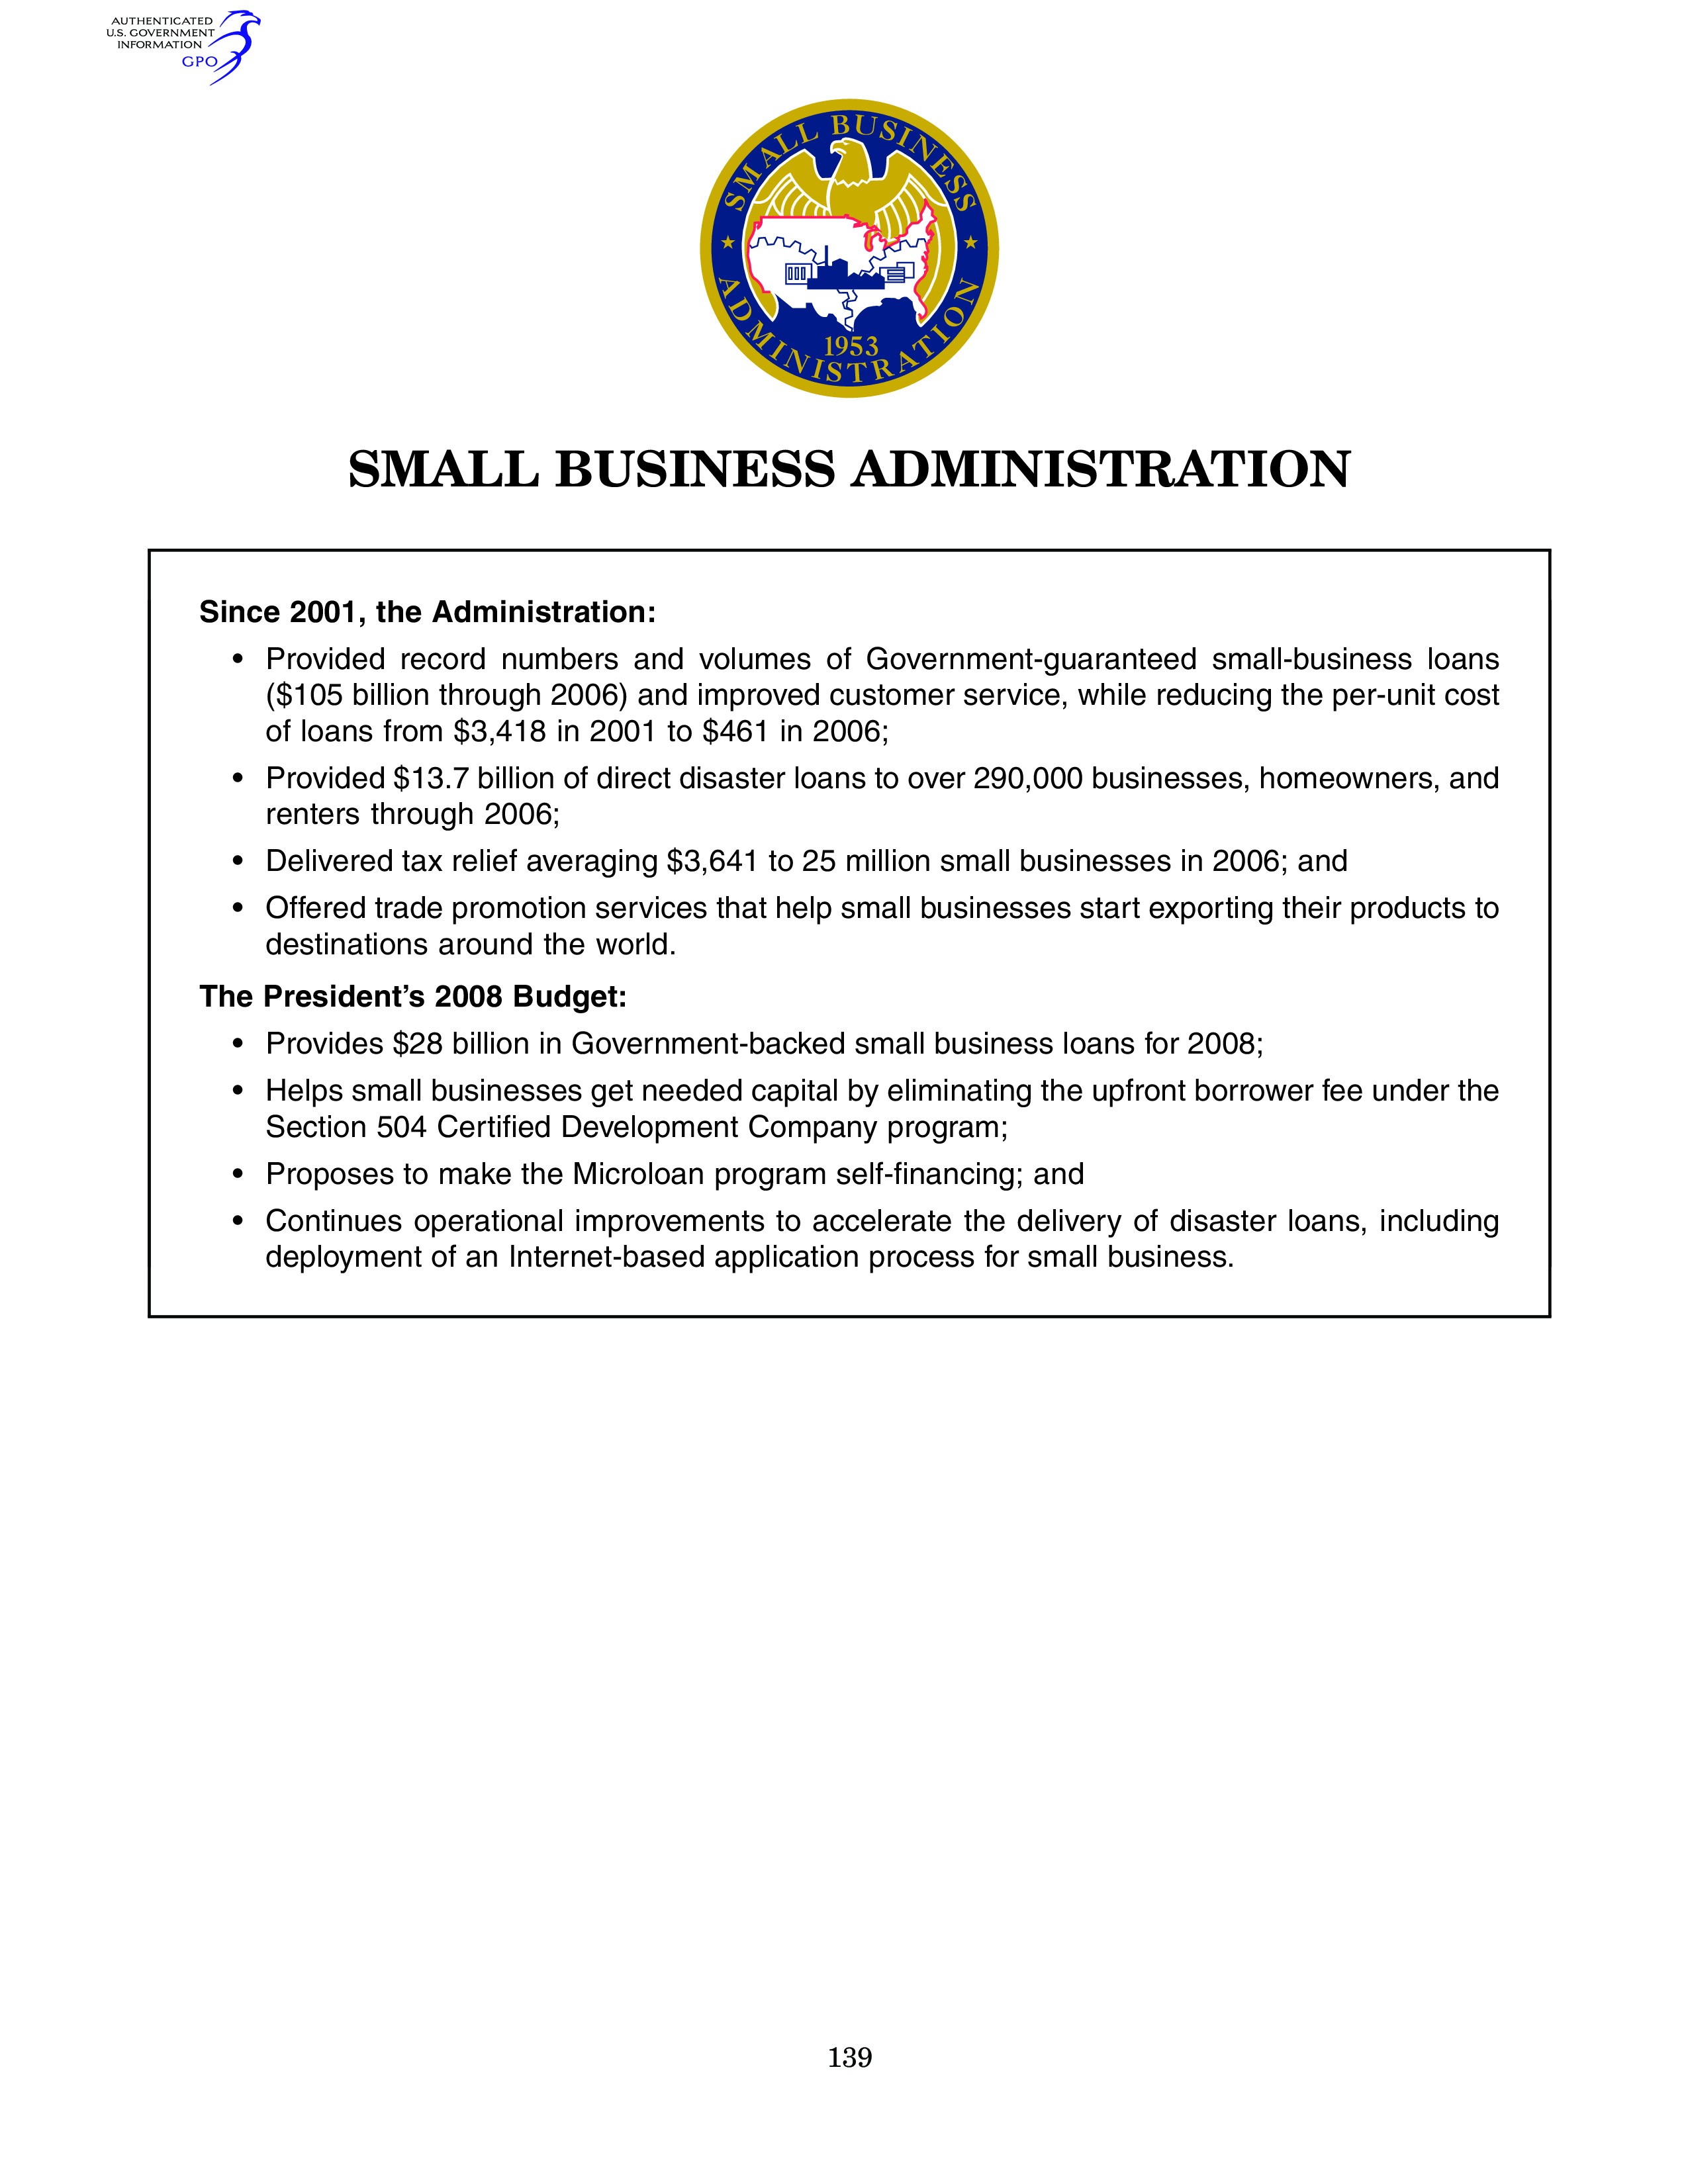 Small Business Administration Budget main image